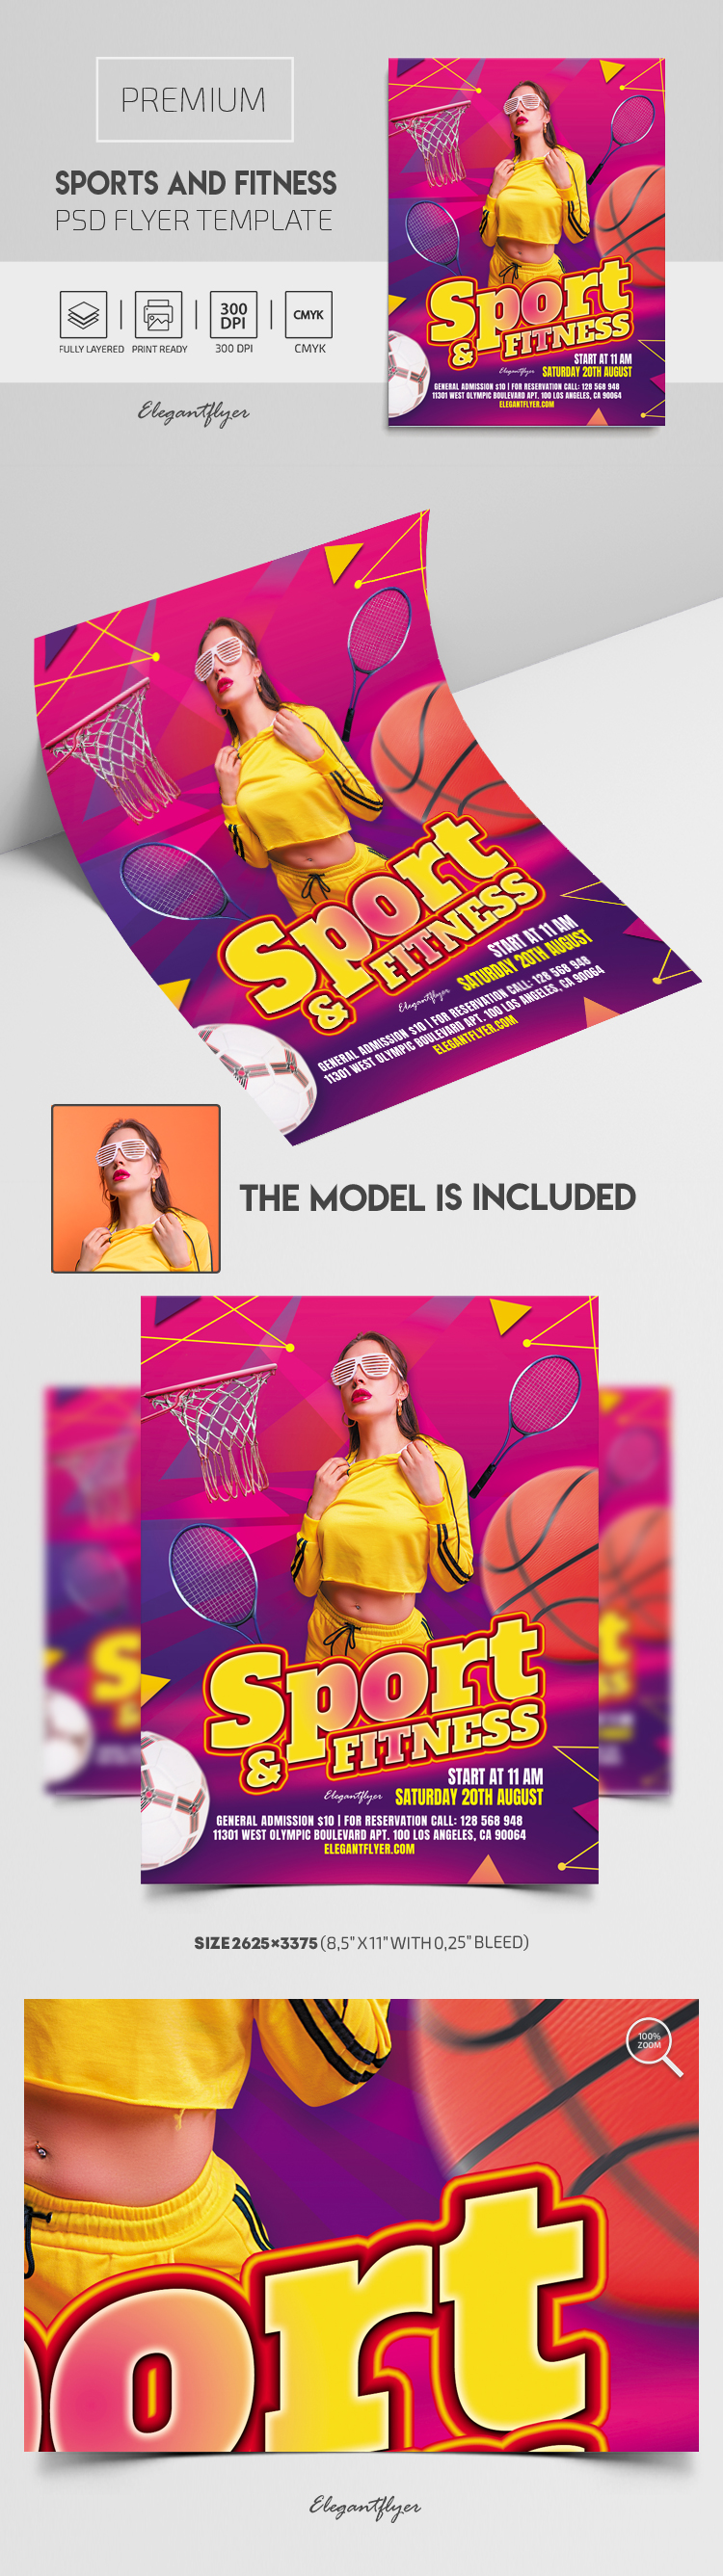 Sports And Fitness – Premium PSD Flyer Template